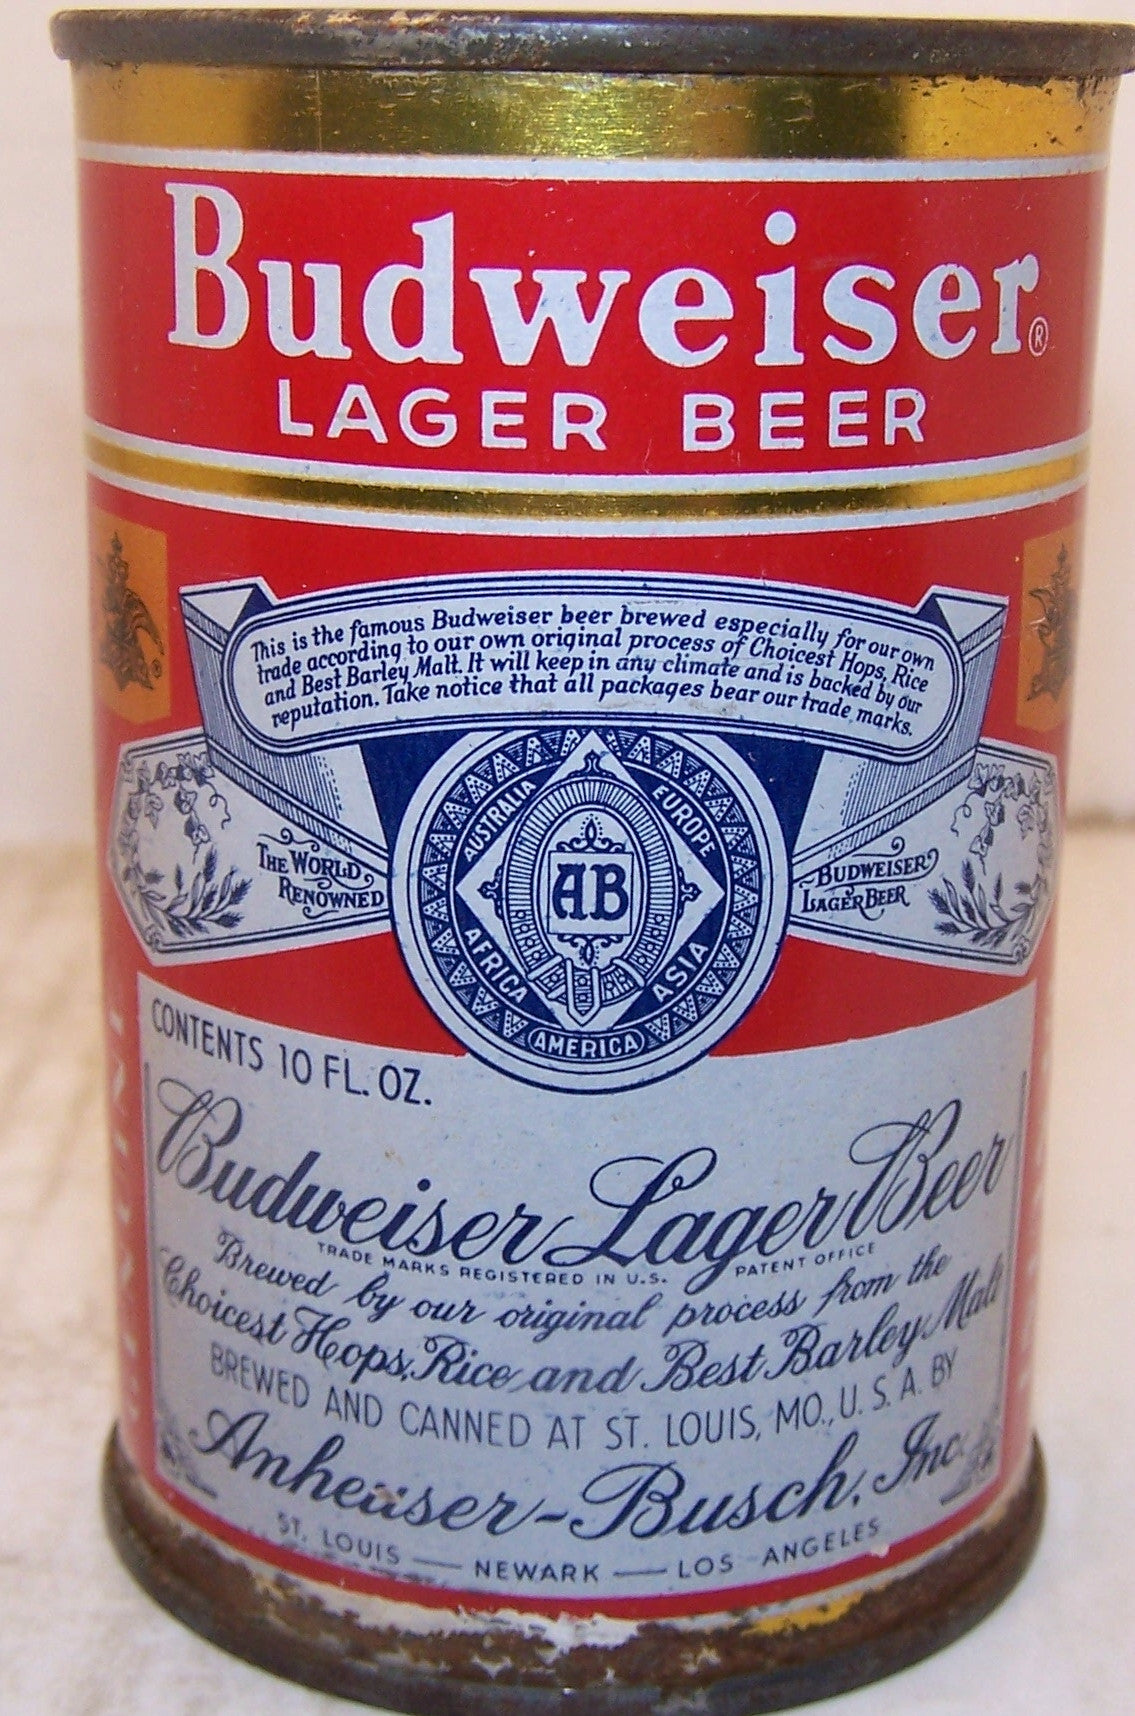 Budweiser 10 ounce Lager Beer, USBC 44-9 Grade 1- Sold on 10/11/15